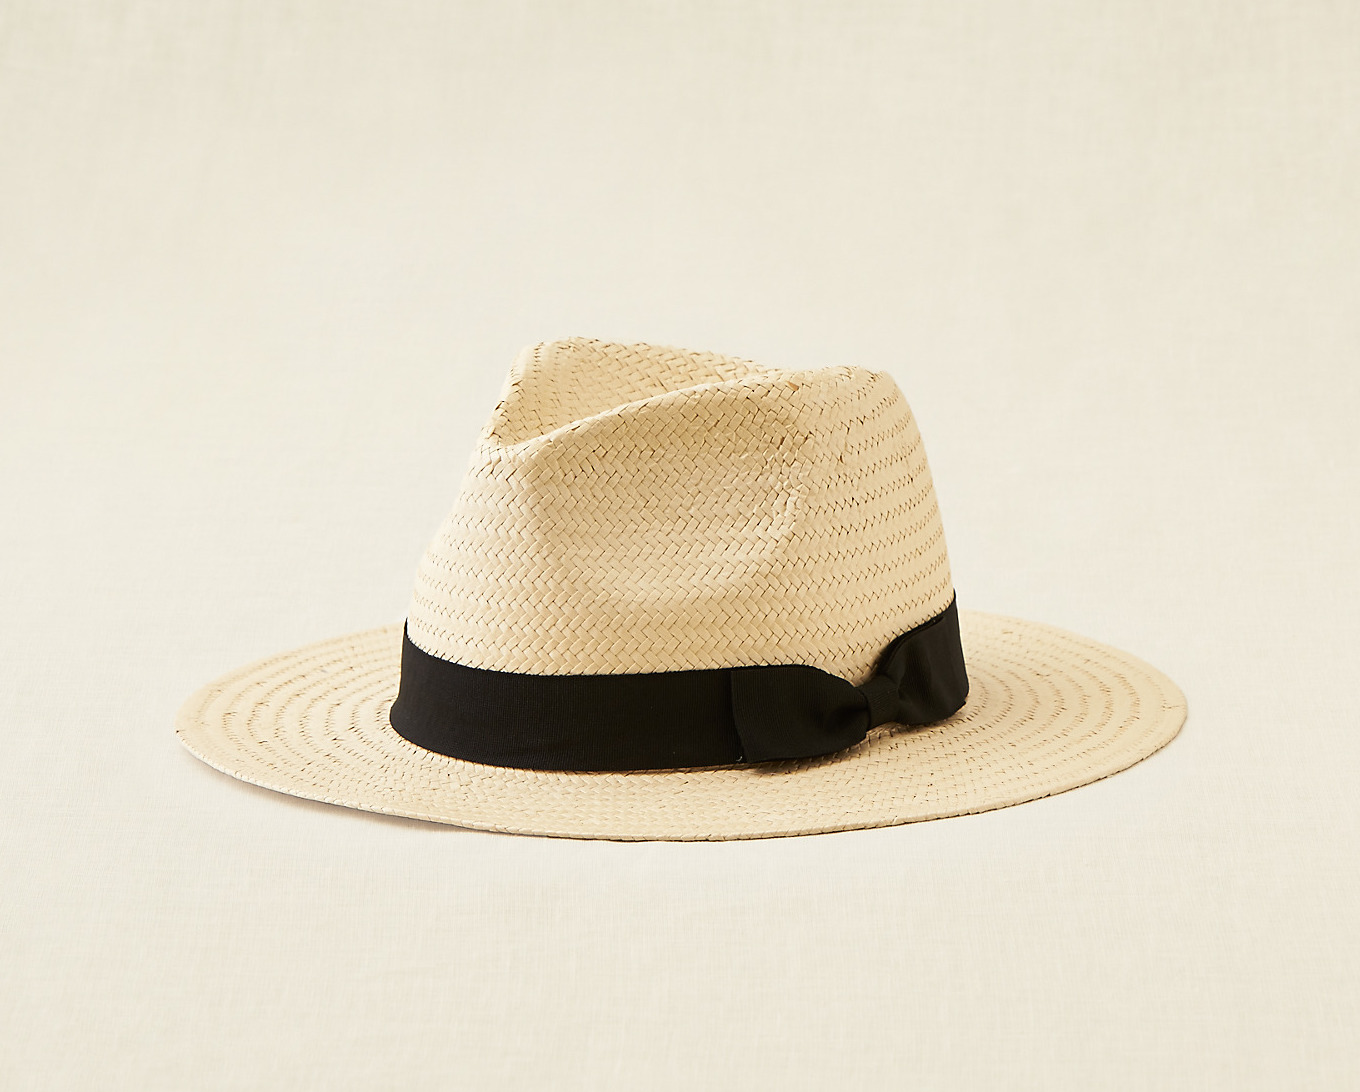 30 Under $30 // Lady Gray // American Eaglie Outfitters hat